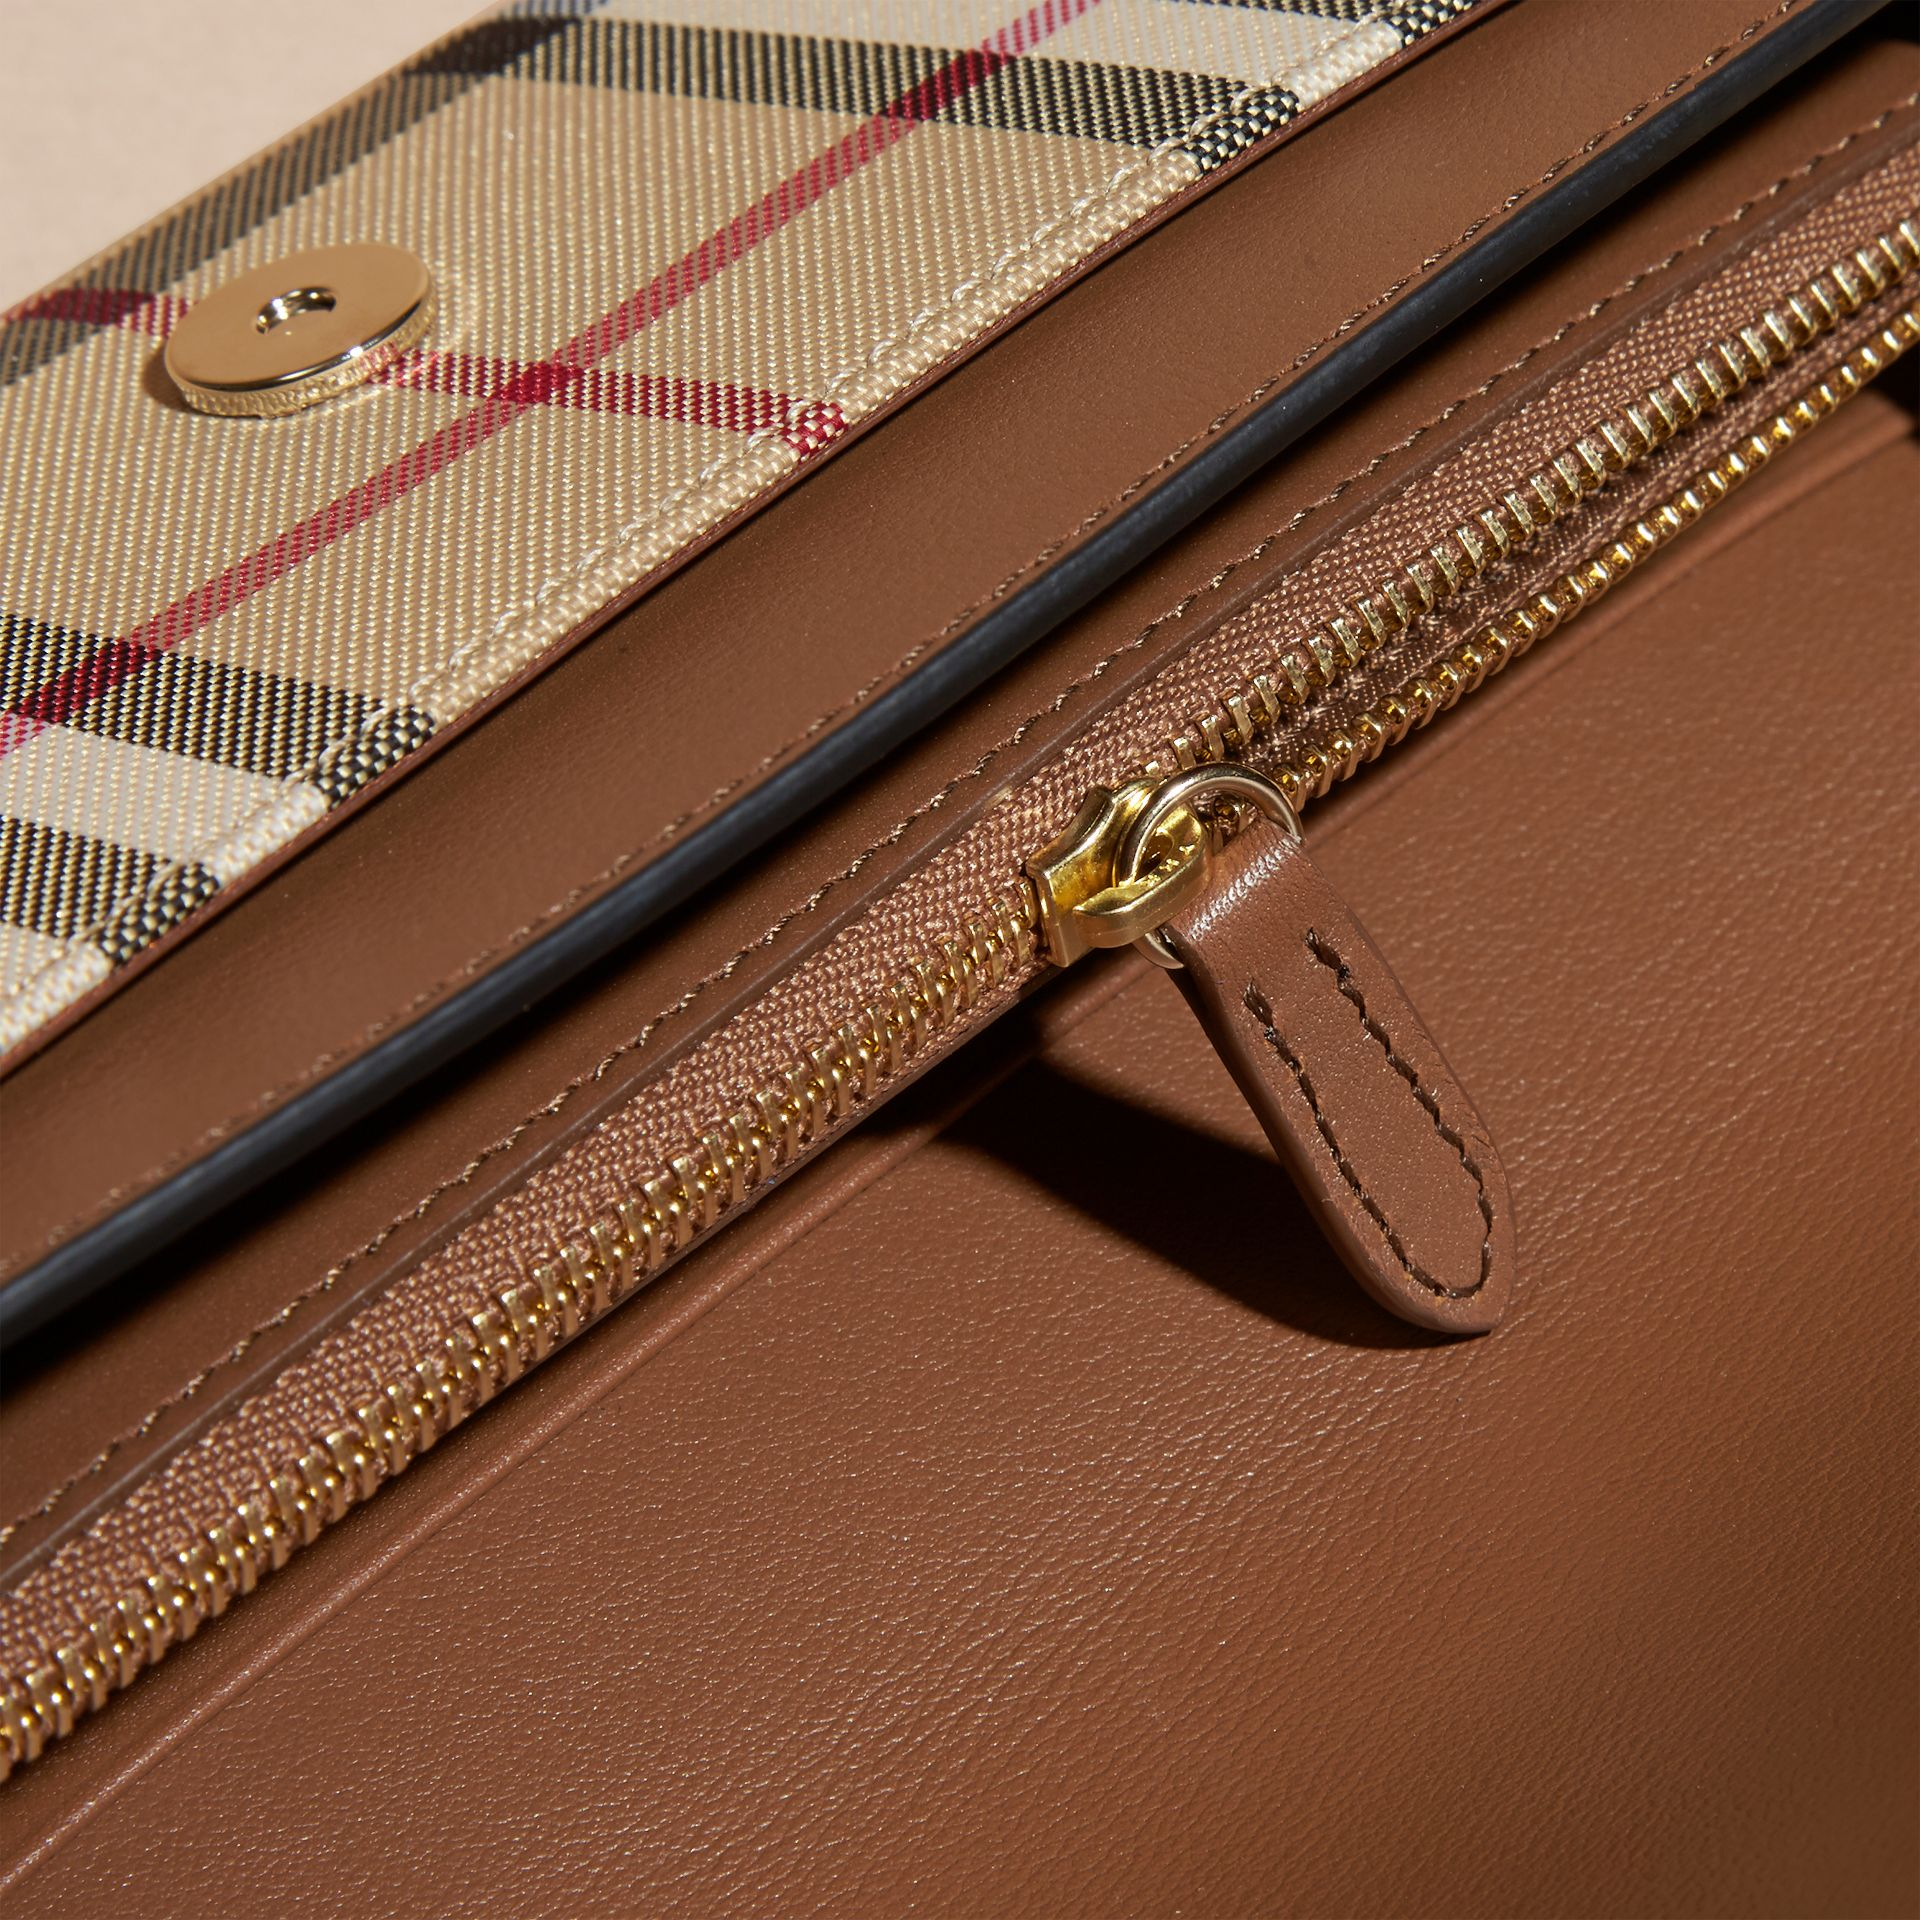 Horseferry Check and Leather Wallet with Chain in Tan - Women | Burberry - gallery image 5